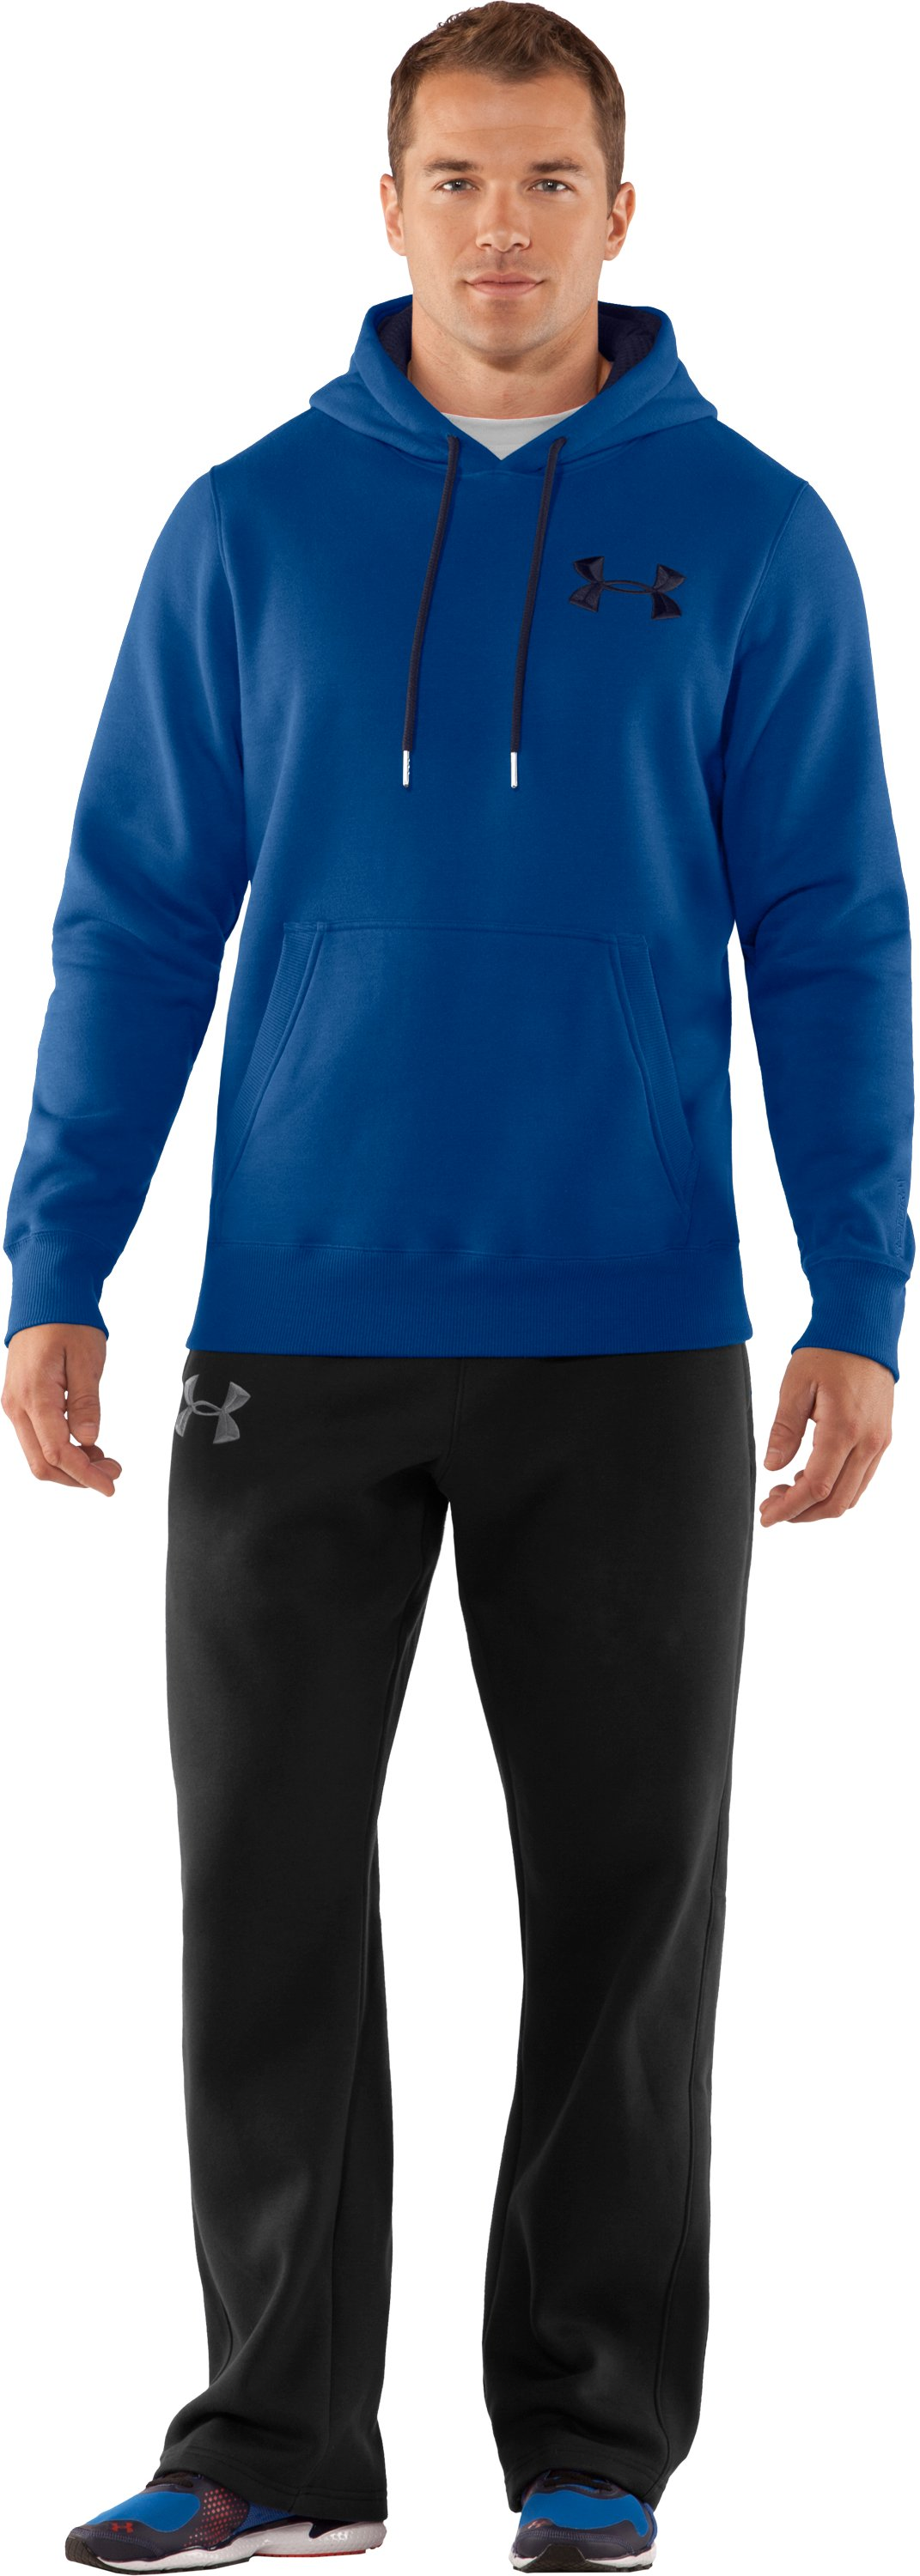 Men's Charged Cotton® Storm Pullover Hoodie, EMPIRE BLUE, zoomed image